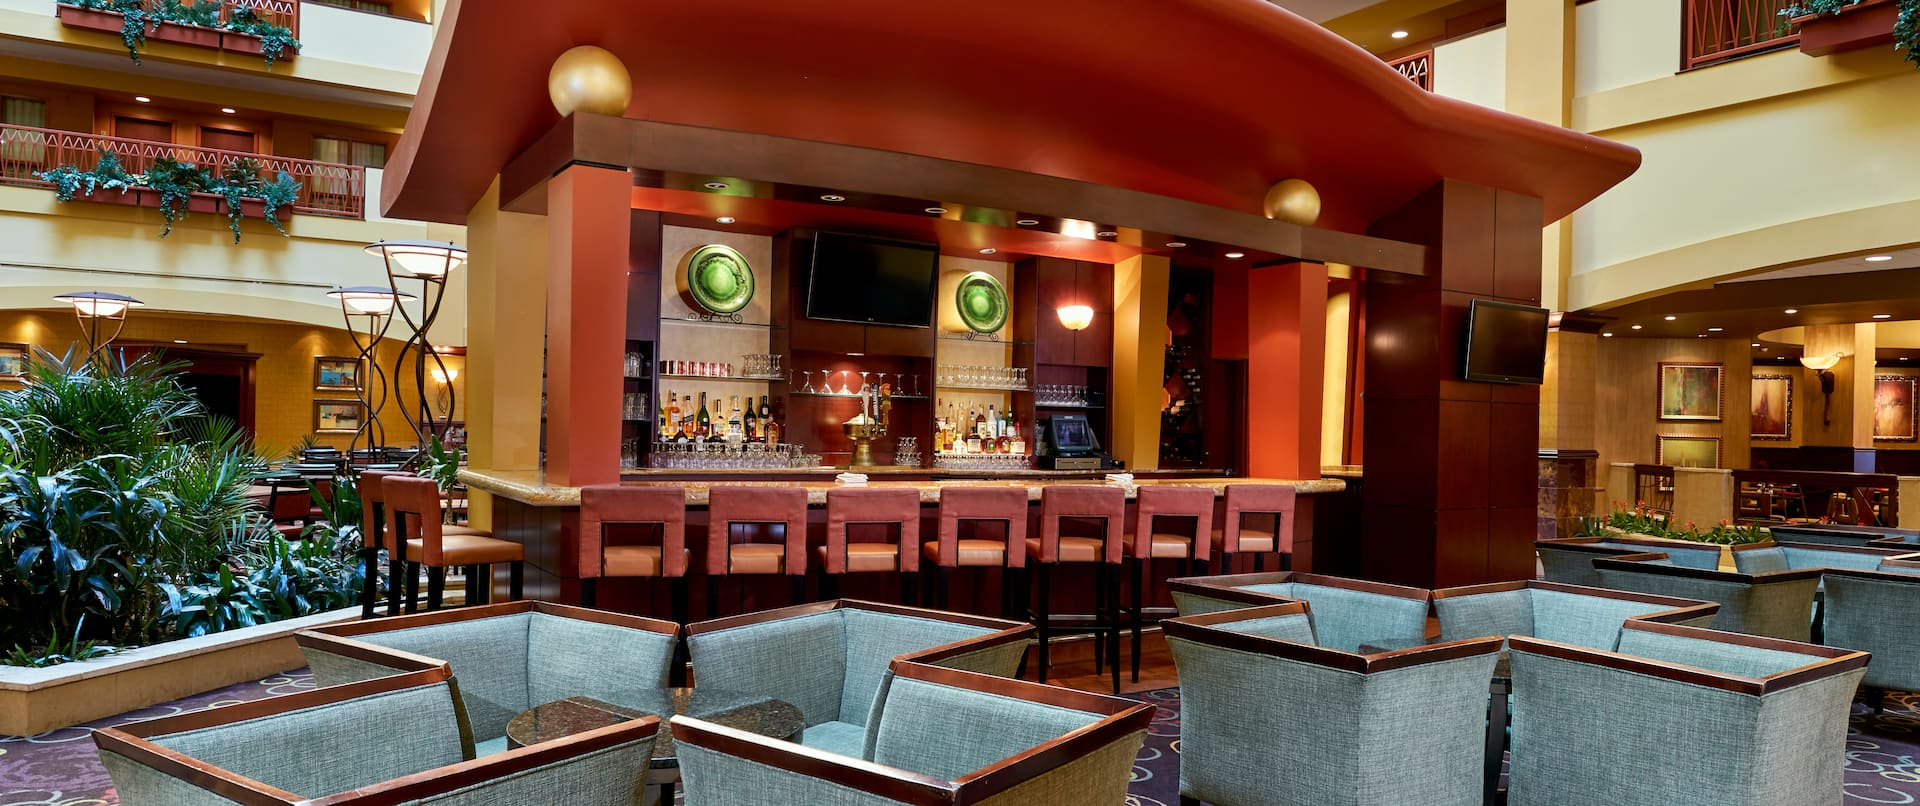 Cyprus Grille Bar and Lounge Area